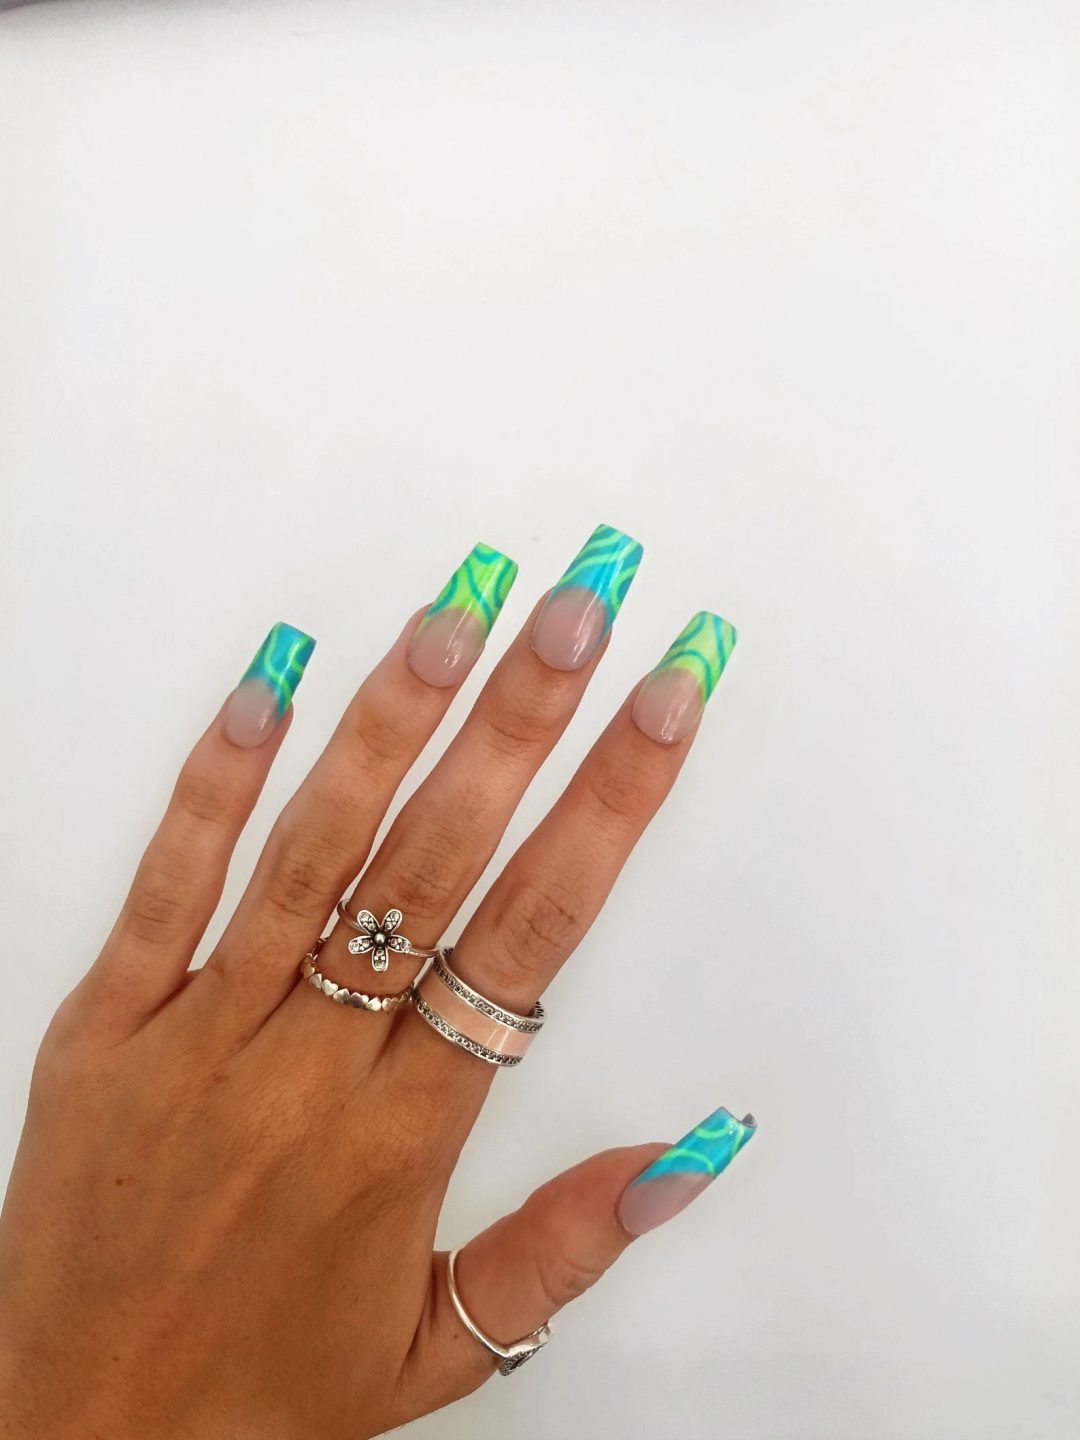 Neon green french tip swirl nails